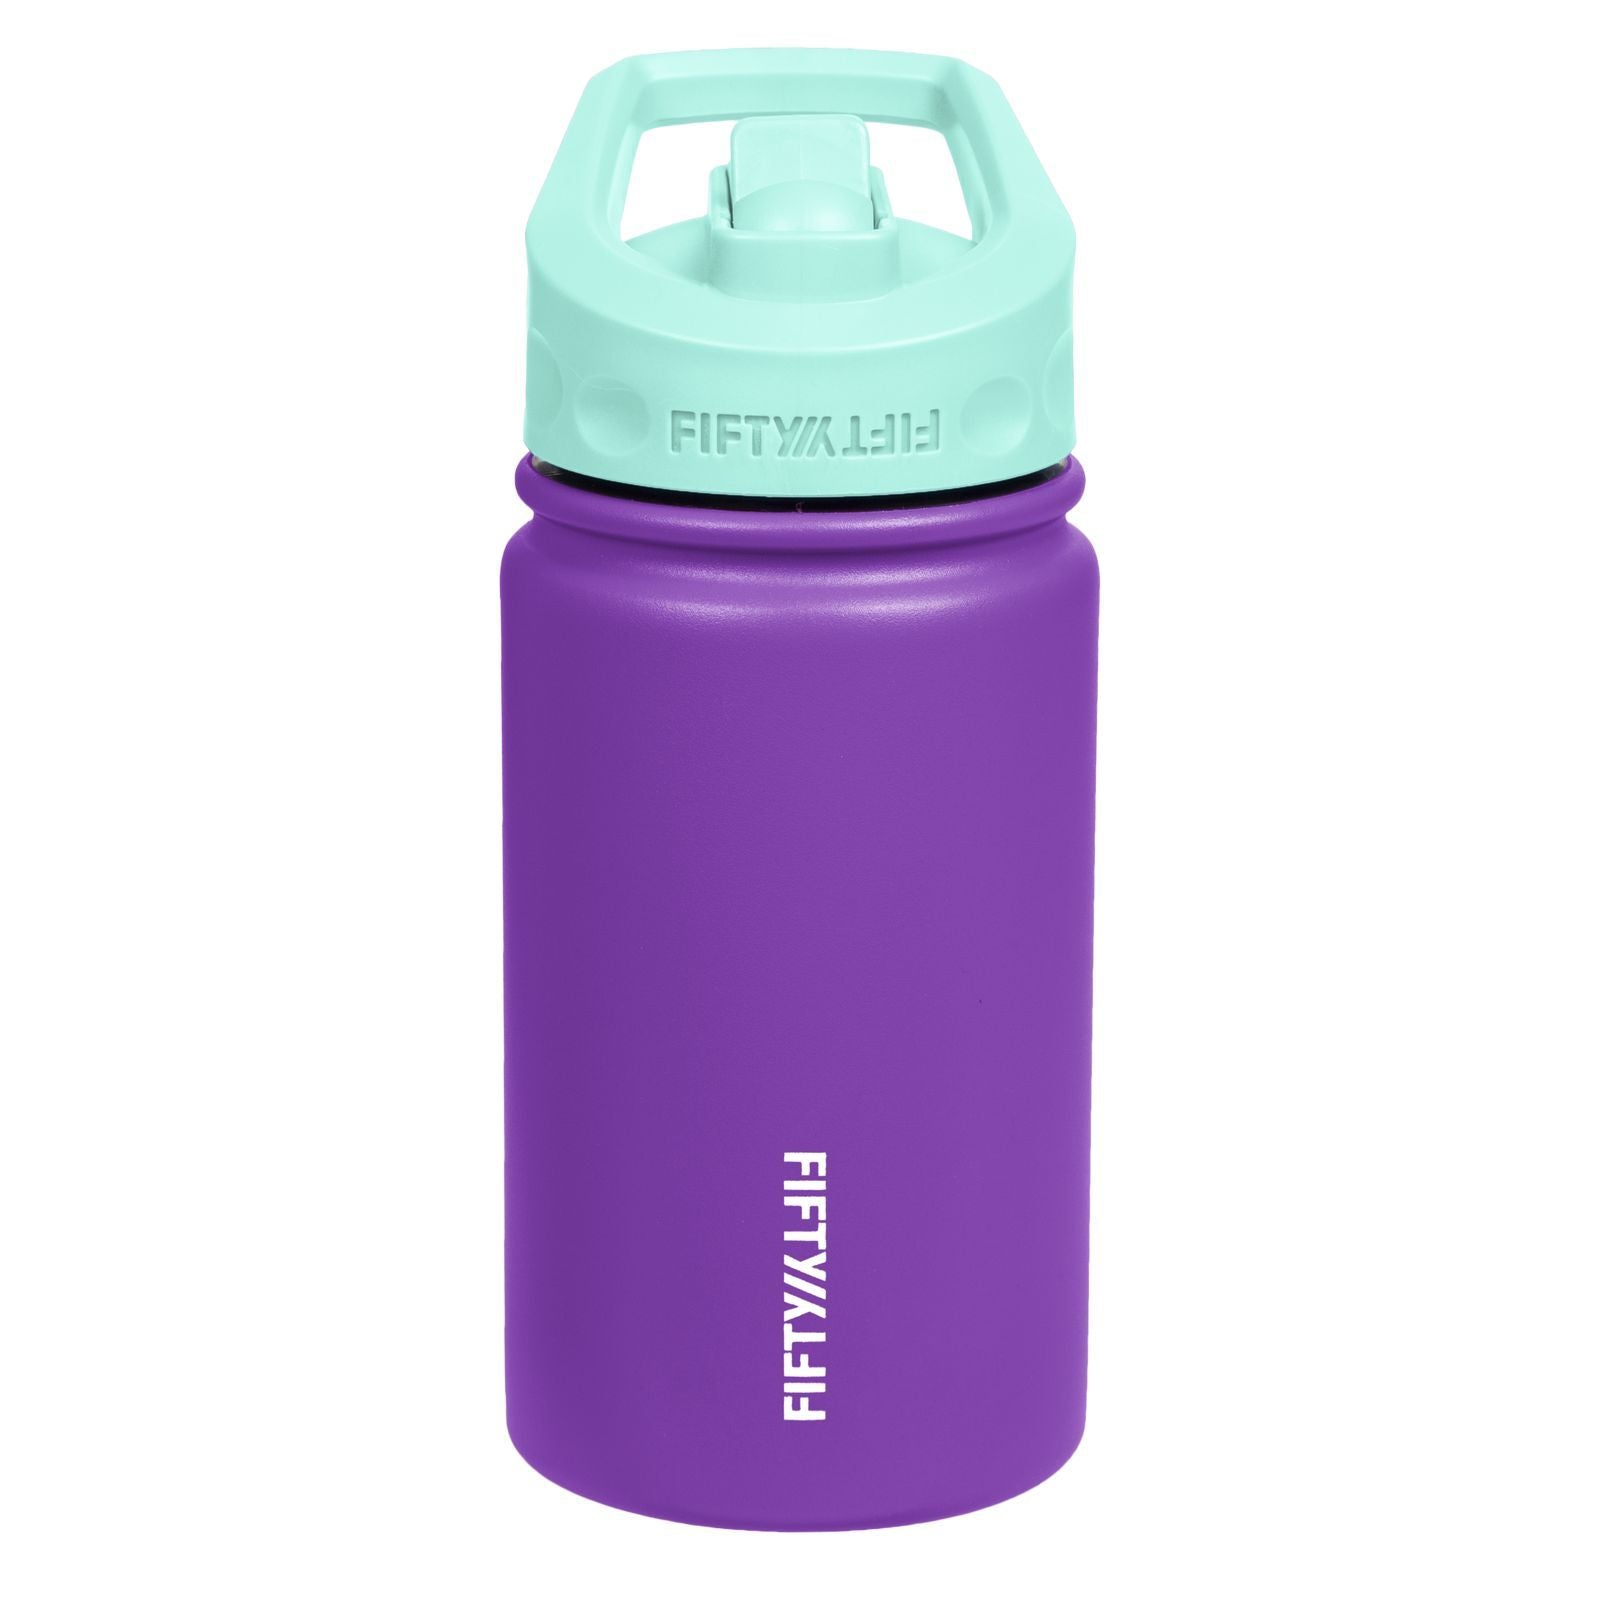 12 oz Children's Water Bottles